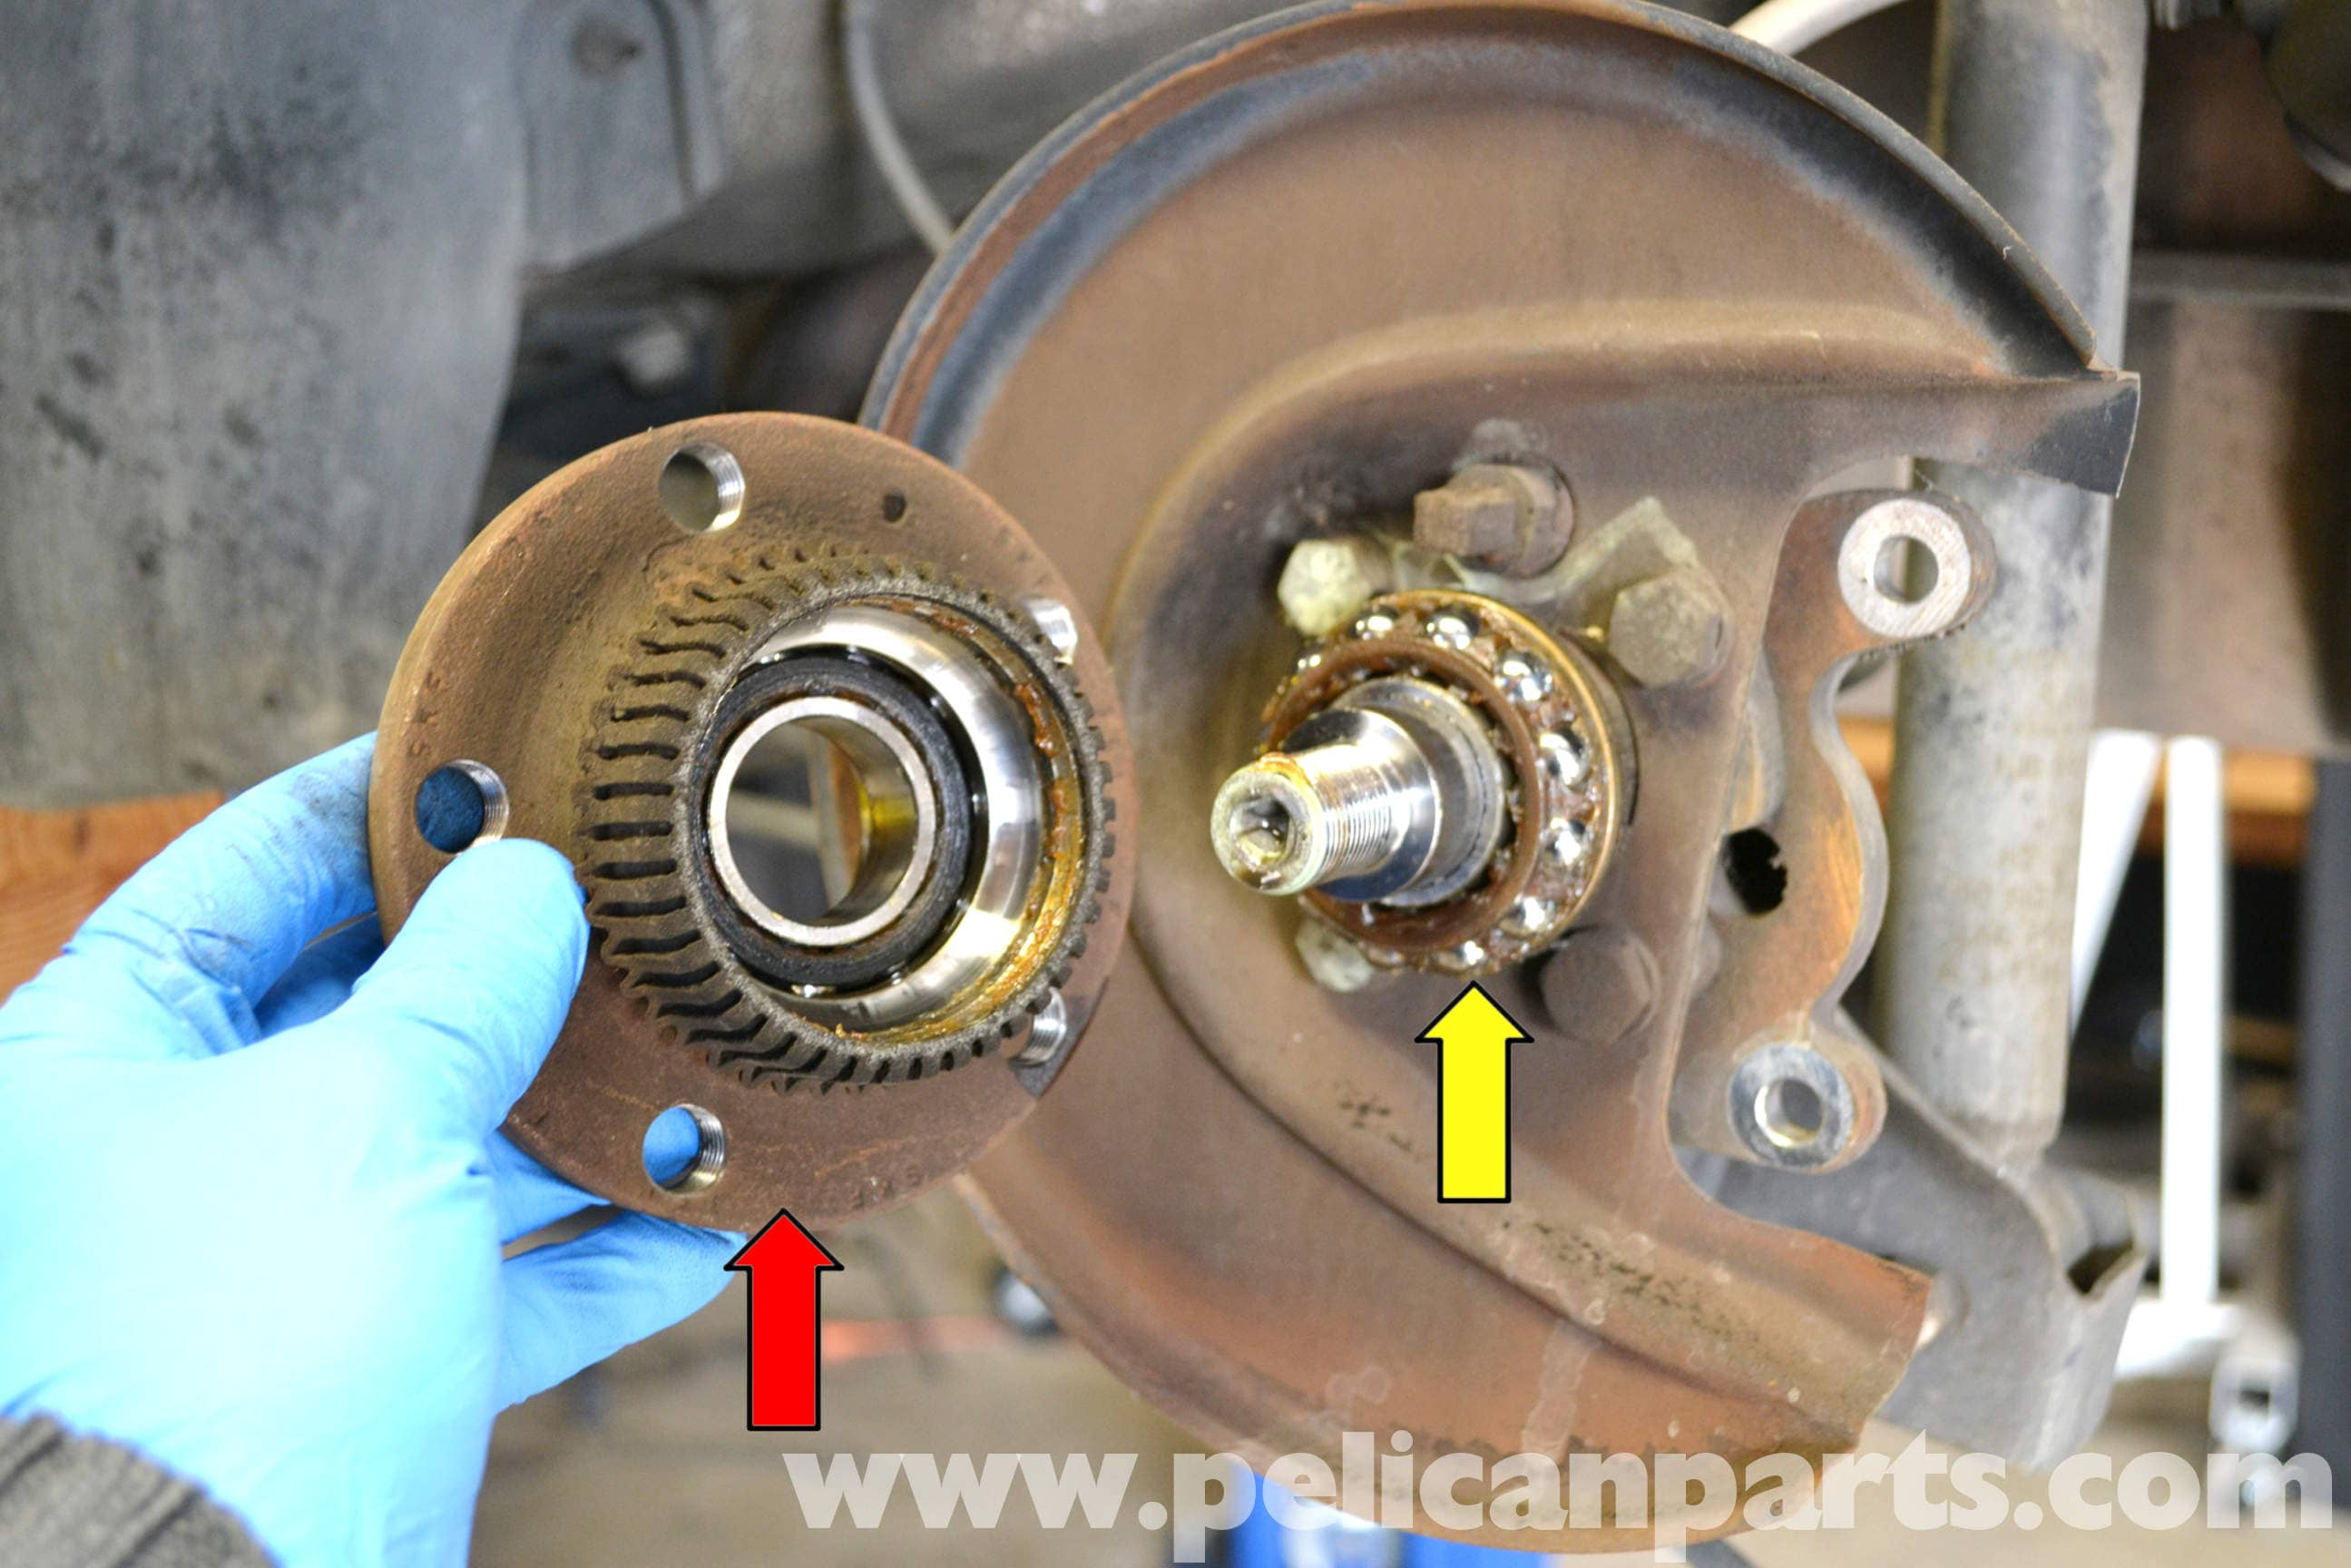 Volkswagen Golf Gti Mk Iv Rear Wheel Hub And Bearing Replacement 1999 2005 Pelican Parts Diy Maintenance Article